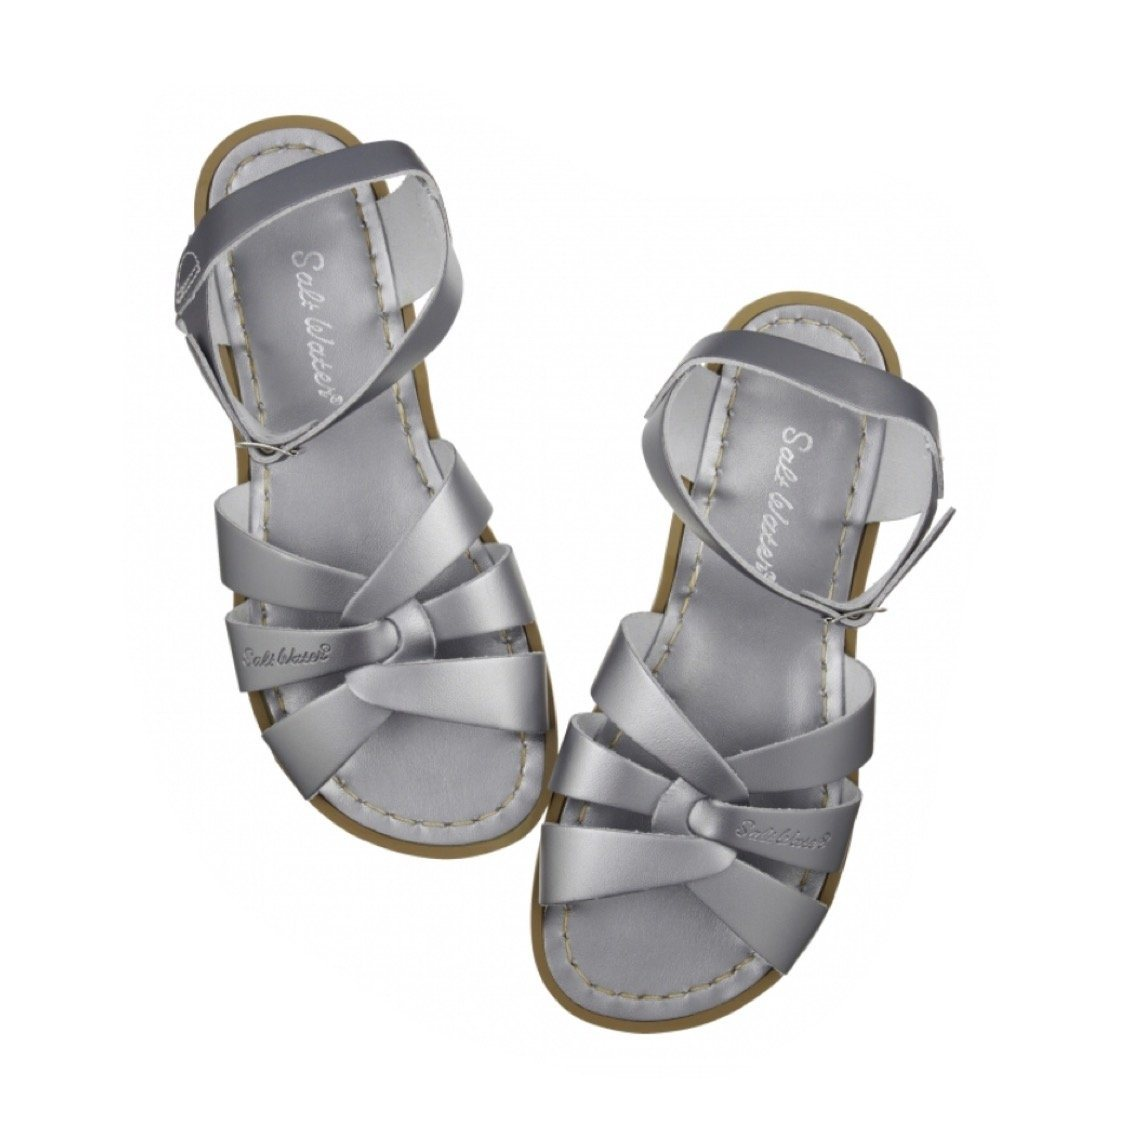 Adult Original Saltwater Sandals - Pewter Sandals Salt Water Sandals